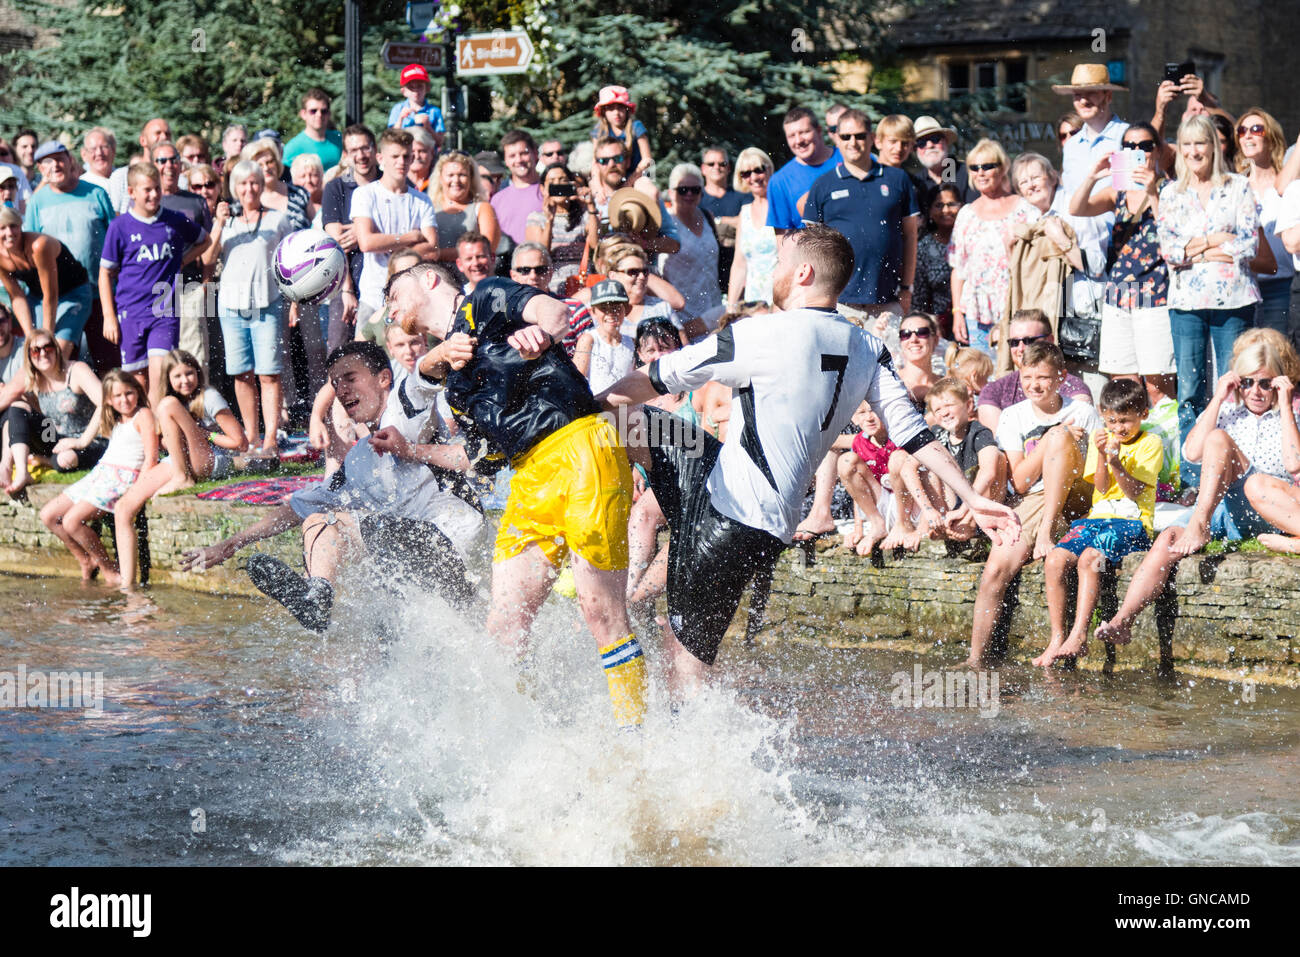 Football game in the river at Bourton-on-the-Water, Cotswolds, UK. - Stock Image